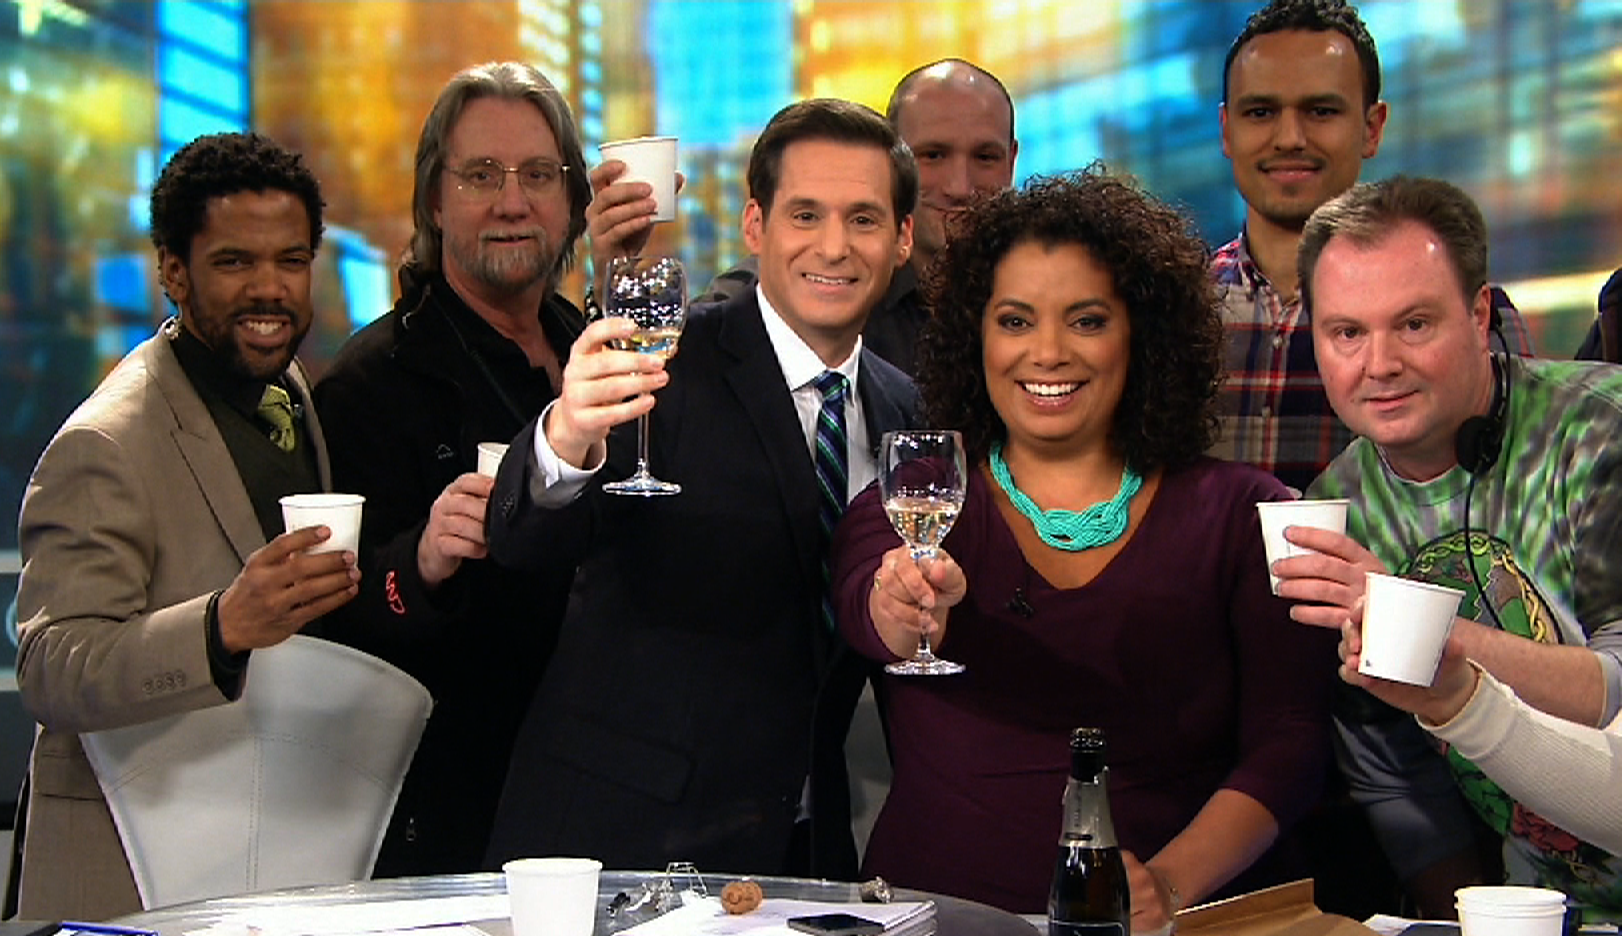 Cheers to Our New @THIS HOUR Studio!